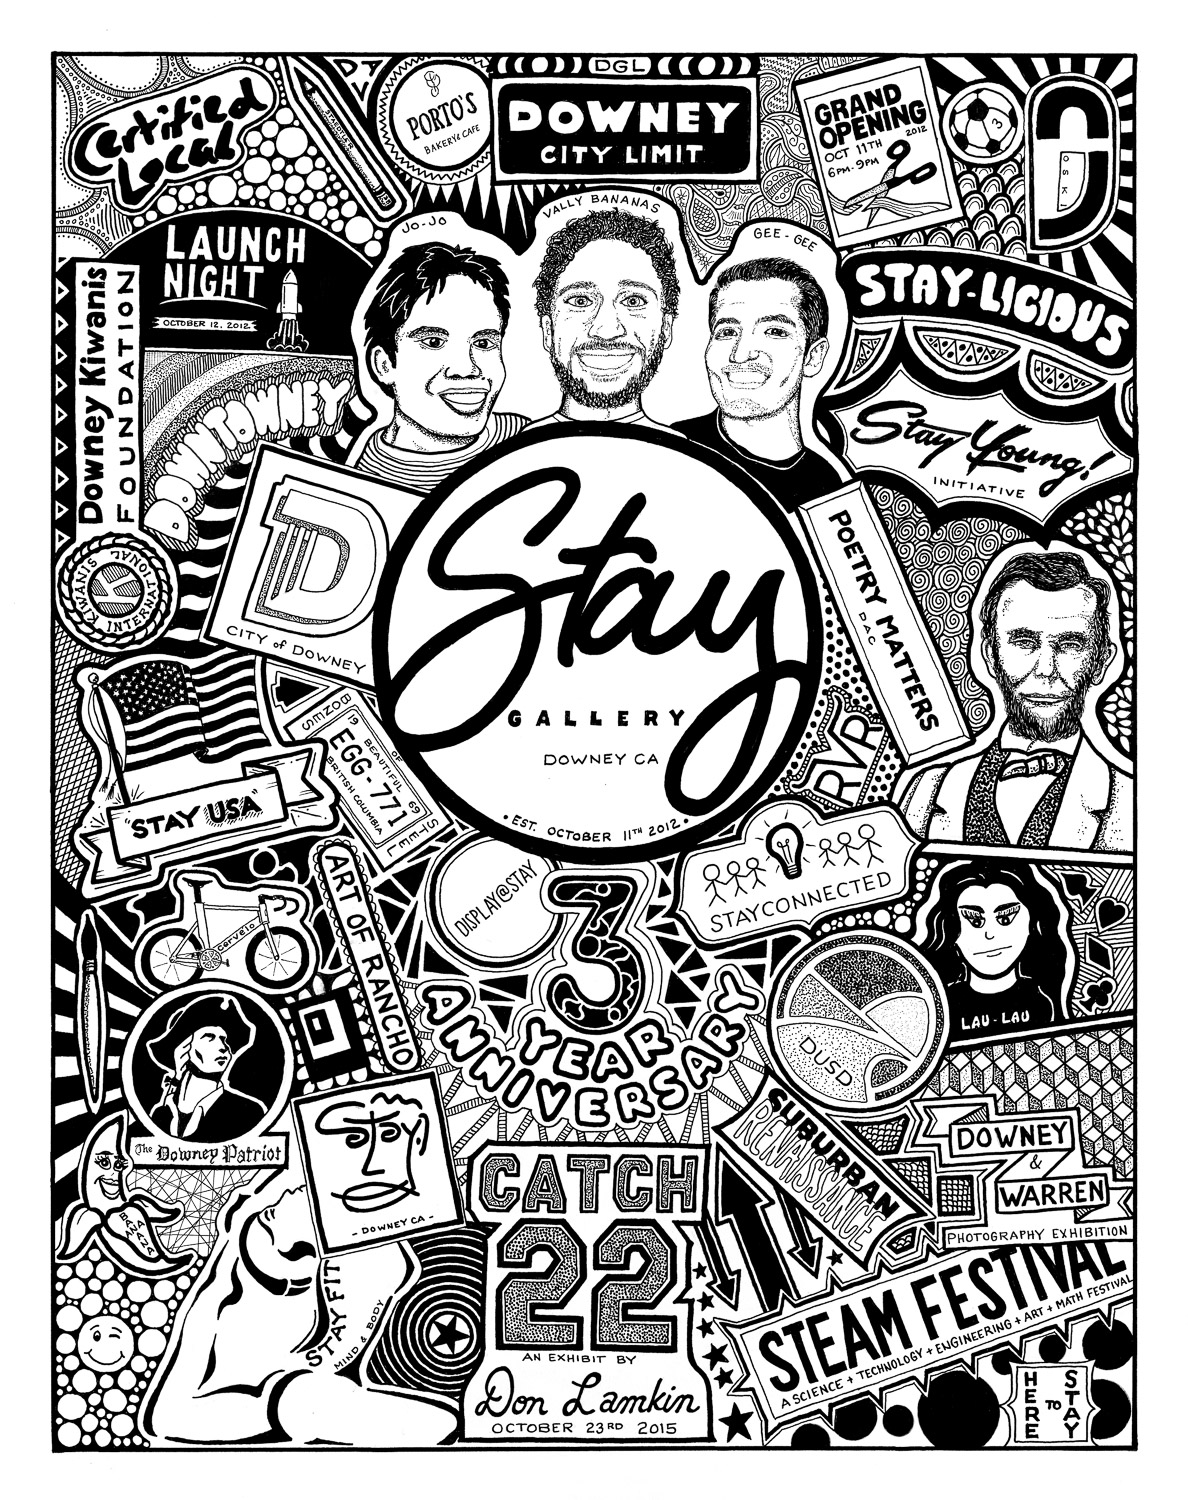 Illustration by Don Lamkin for Stay Gallery's third anniversary, commemorating the team behind Stay Gallery and all of its accomplishments.